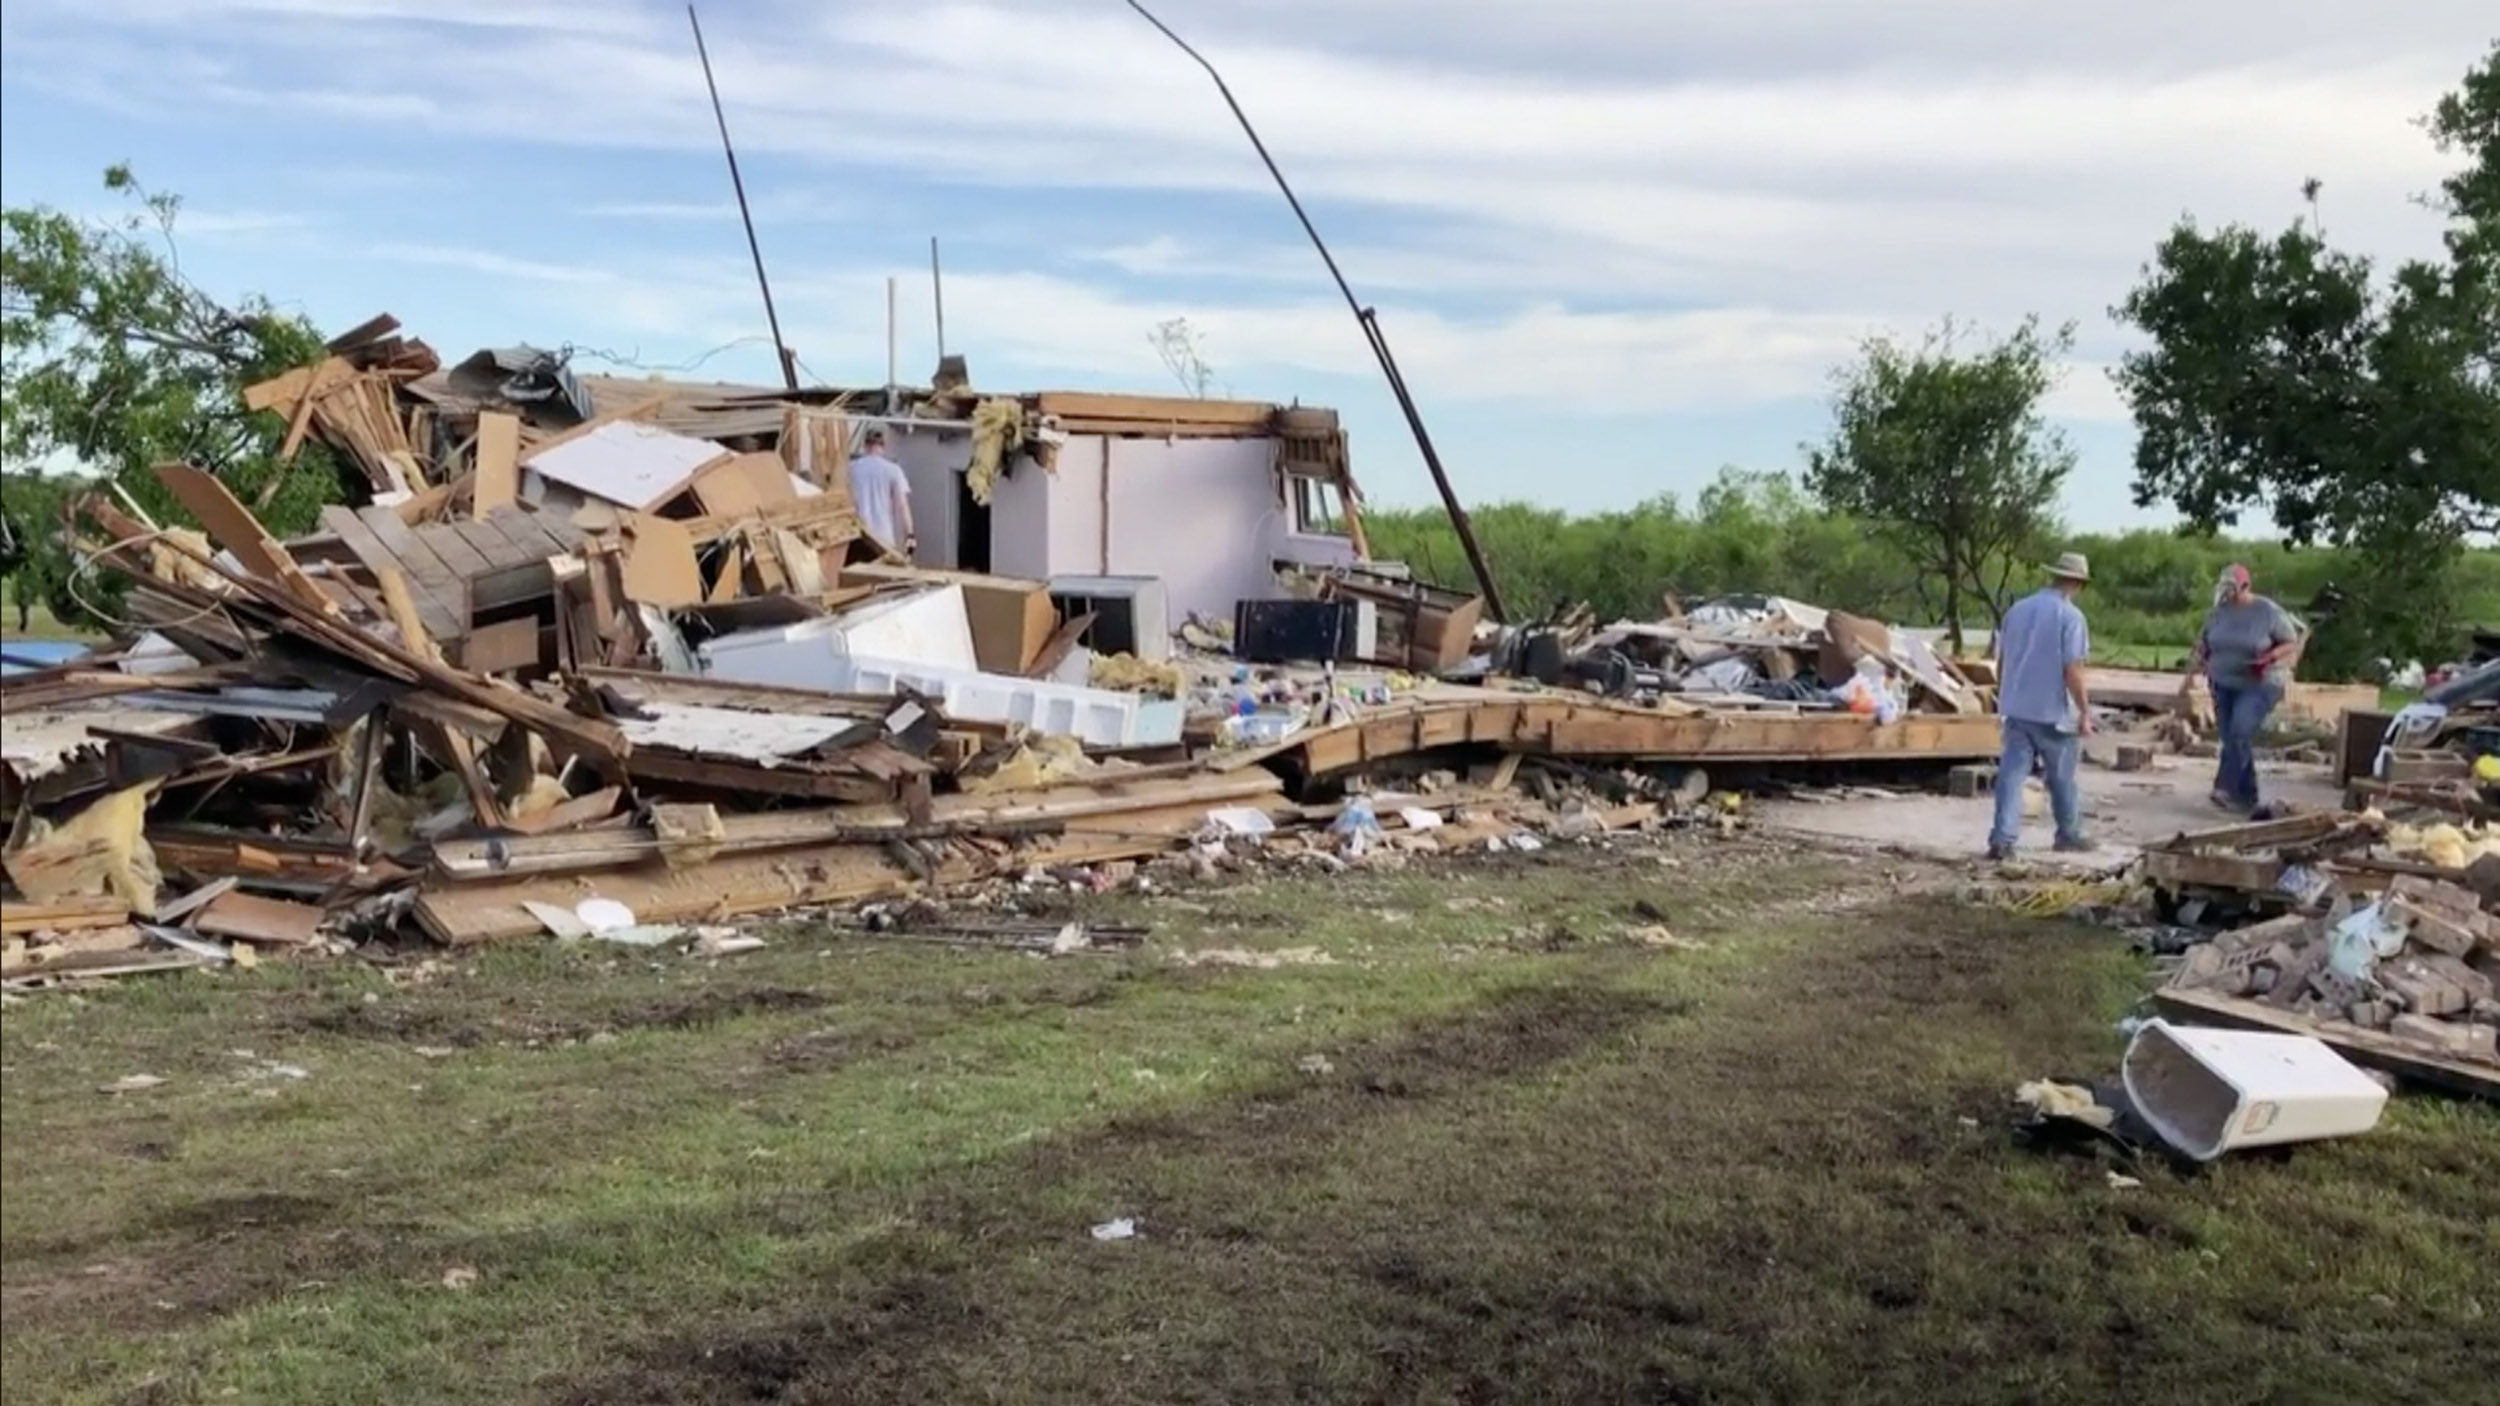 18 Reported Tornadoes In Texas, Oklahoma And More As